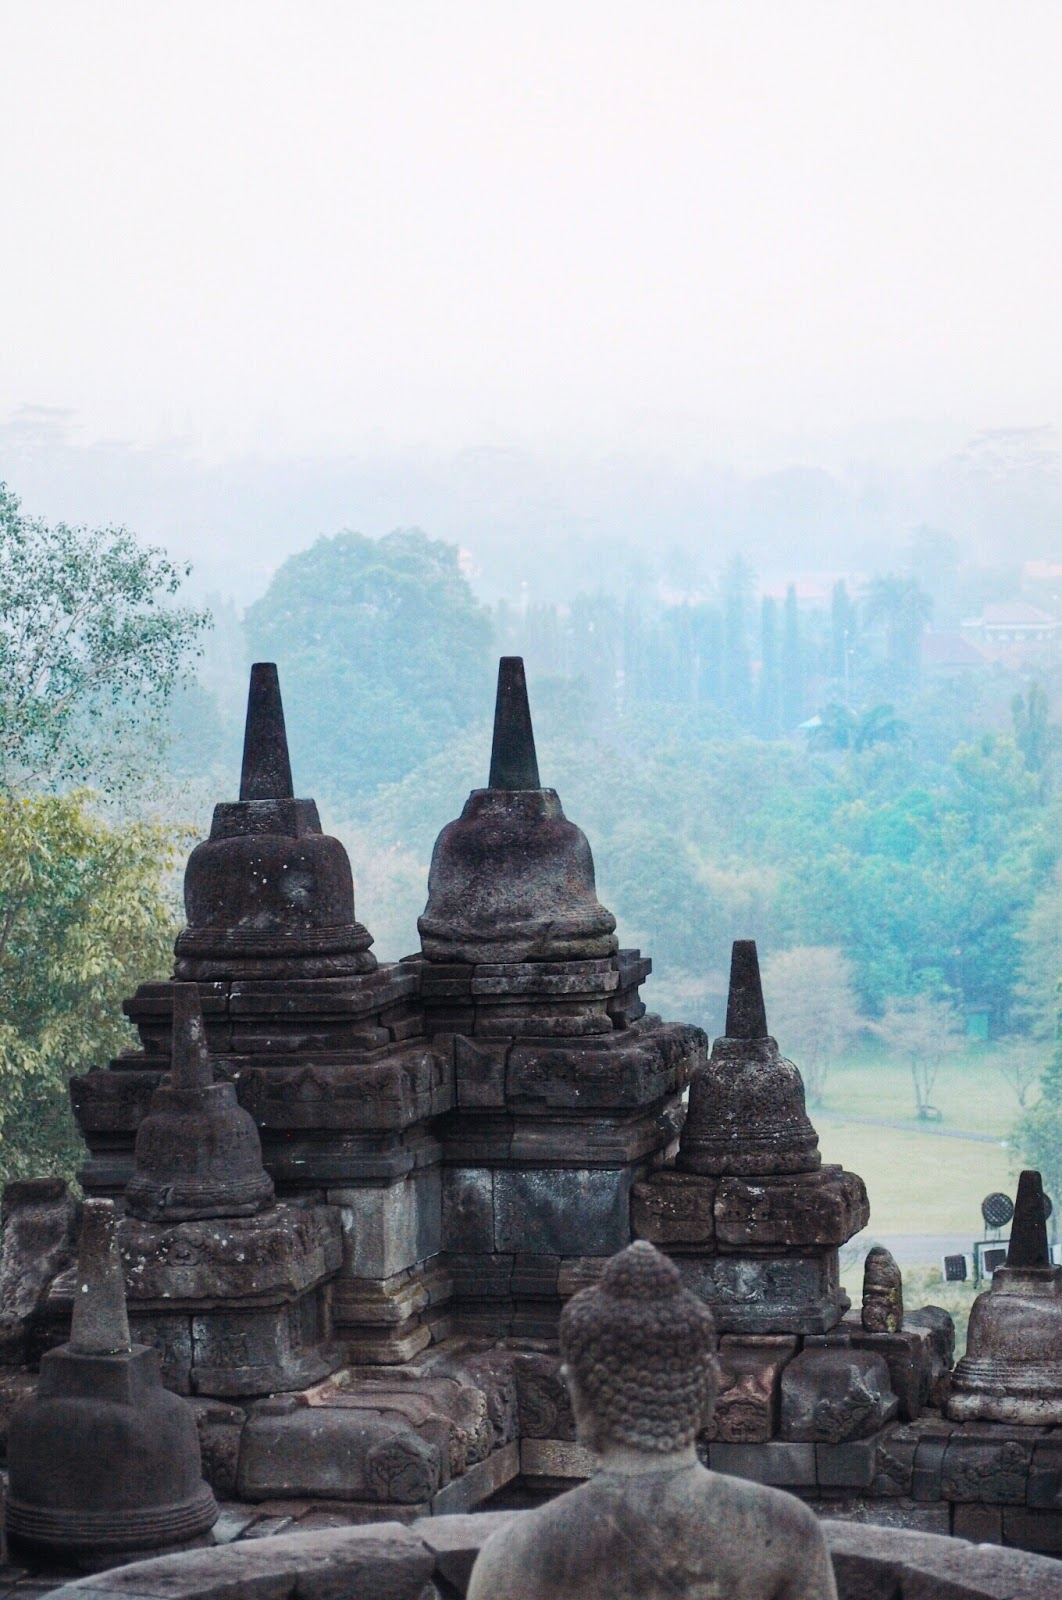 Borobudur Temple at dawn